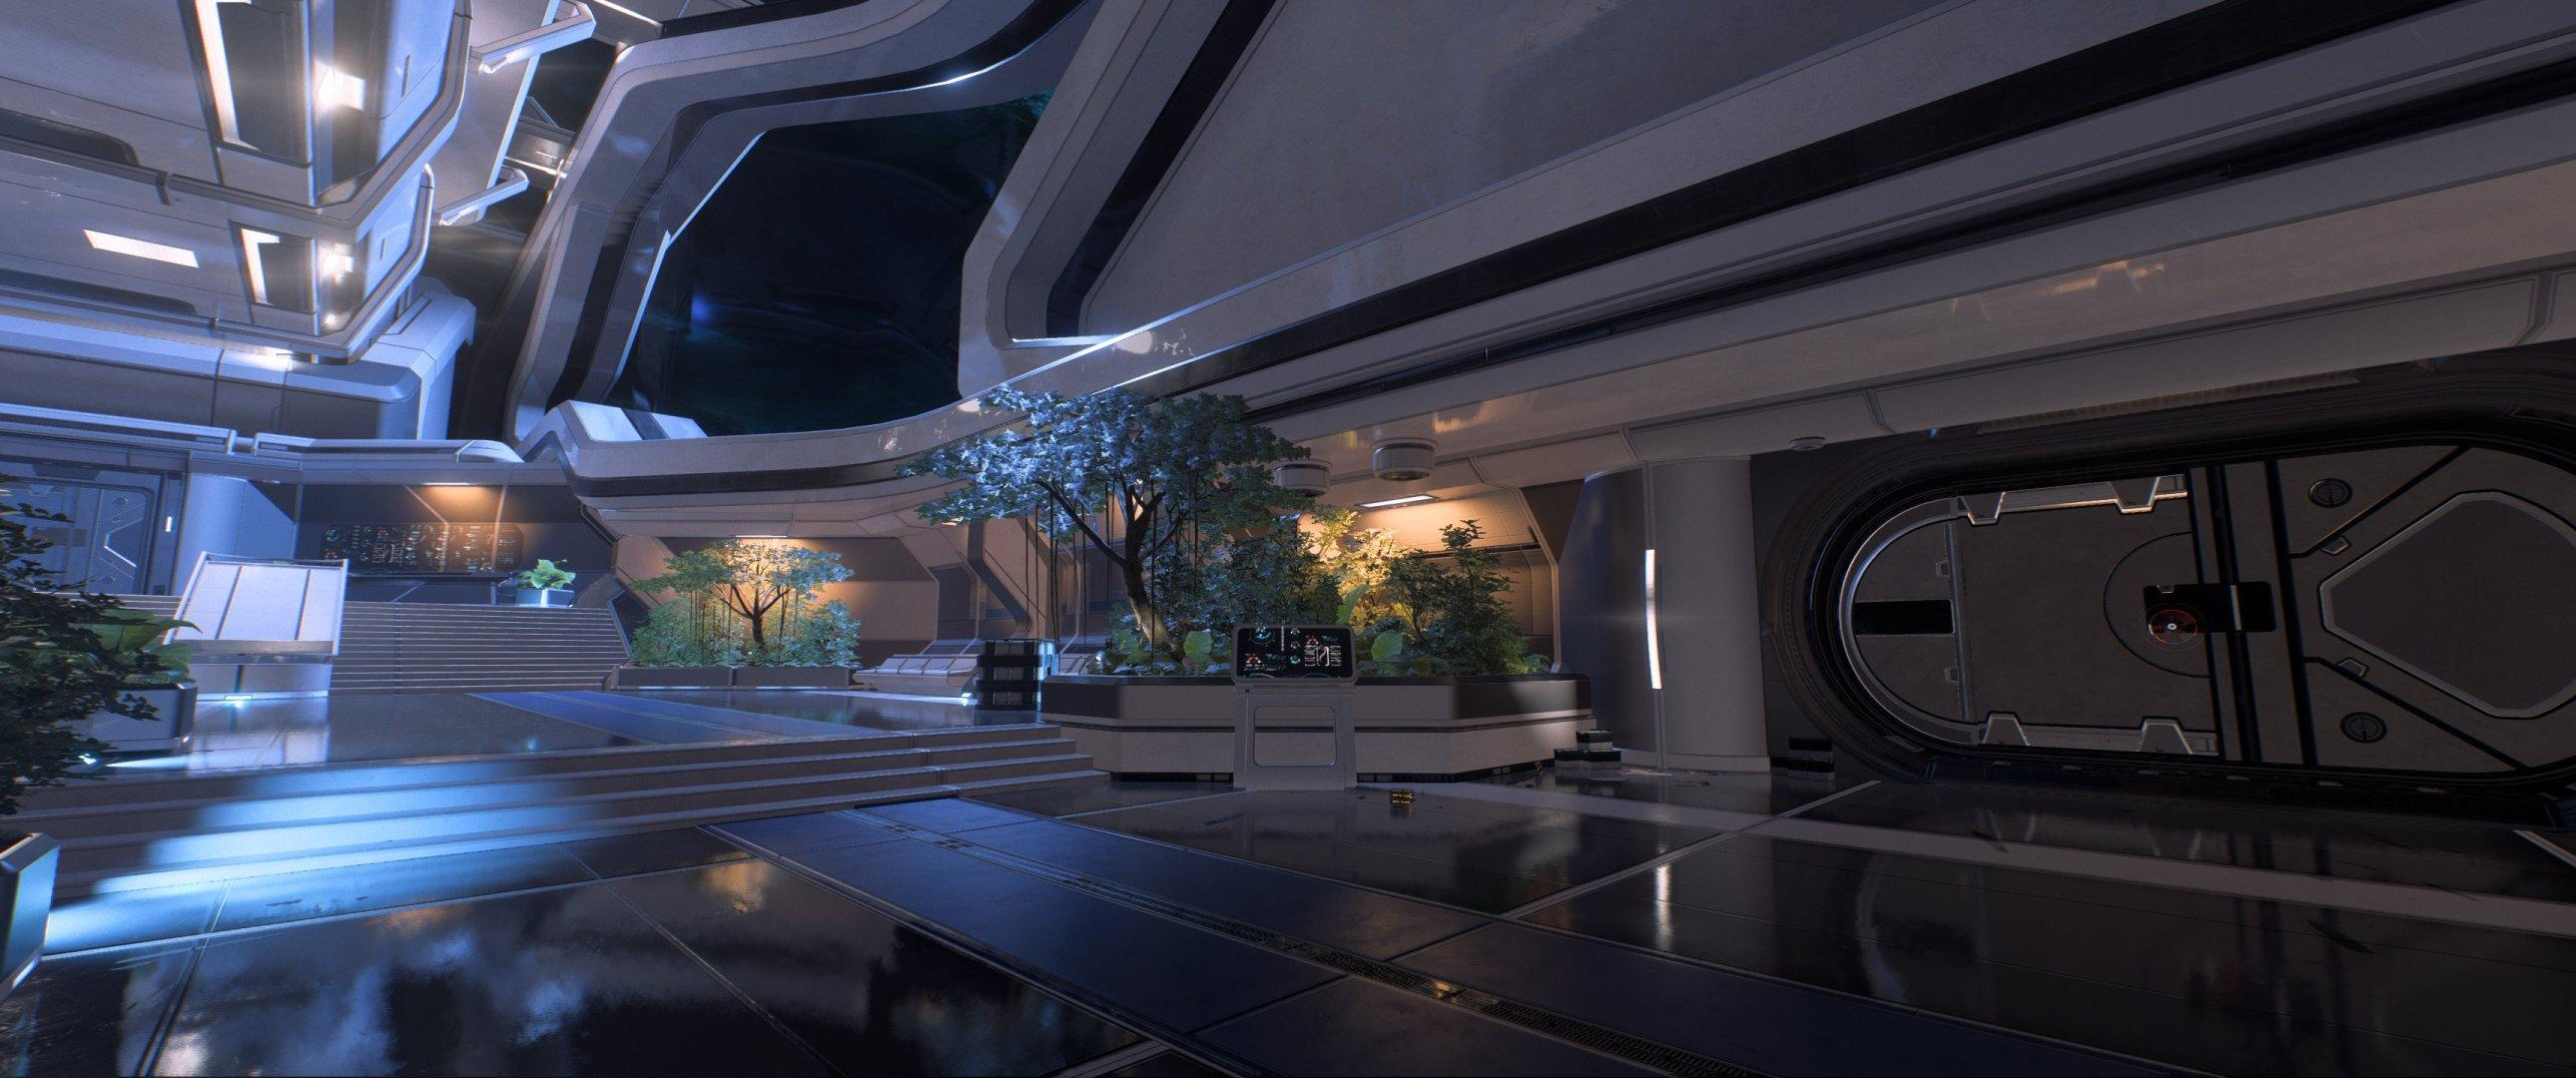 Mass Effect Andromeda - Hyperion